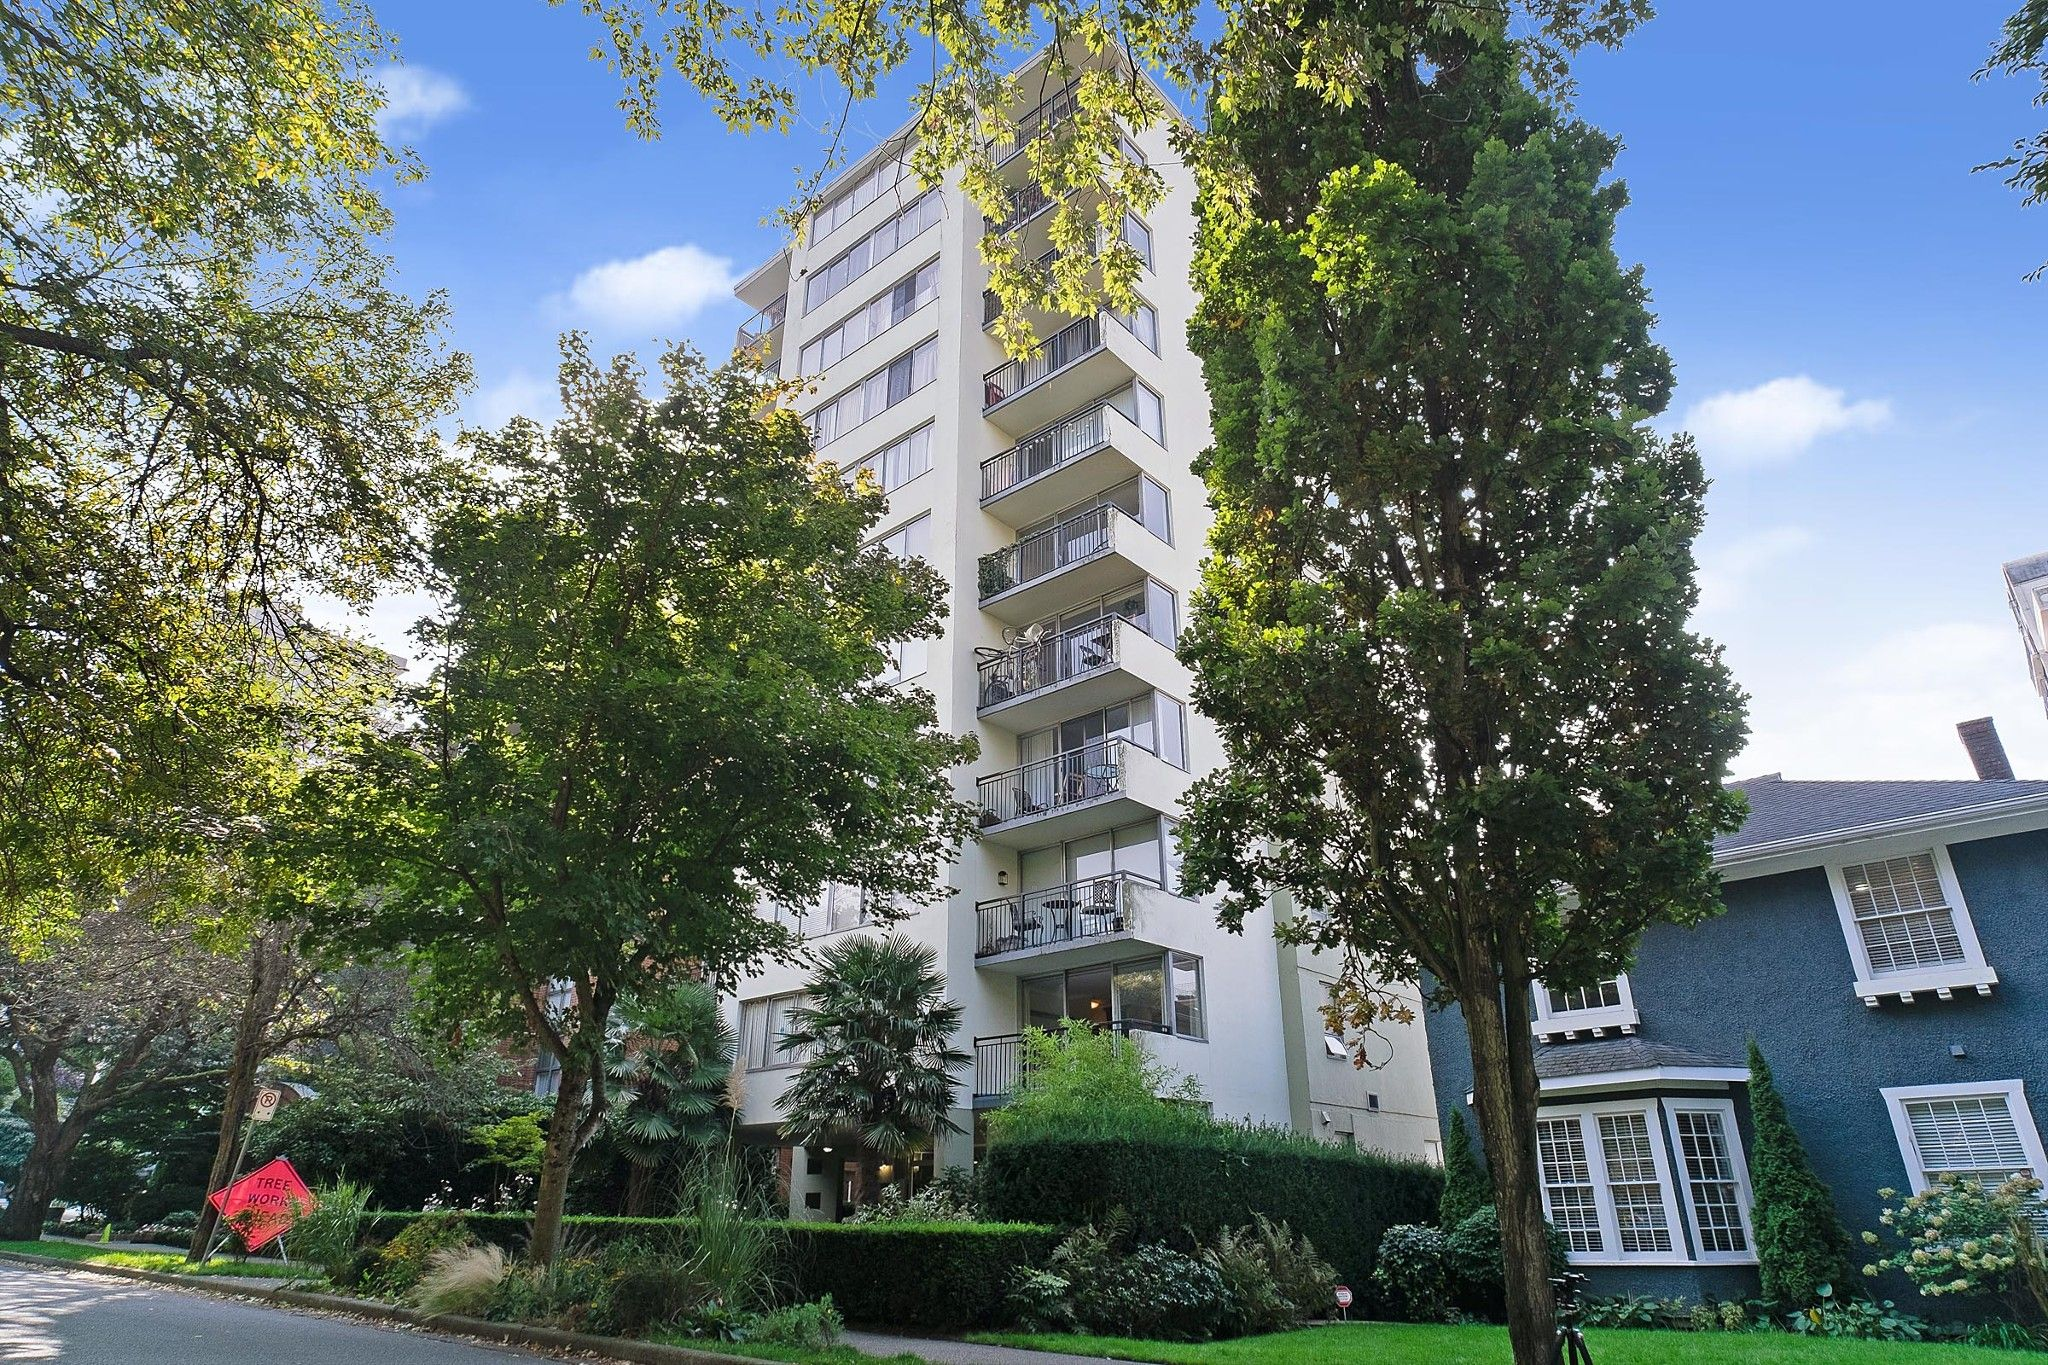 """Main Photo: 202 1534 HARWOOD Street in Vancouver: West End VW Condo for sale in """"ST. PIERRE"""" (Vancouver West)  : MLS®# R2505398"""